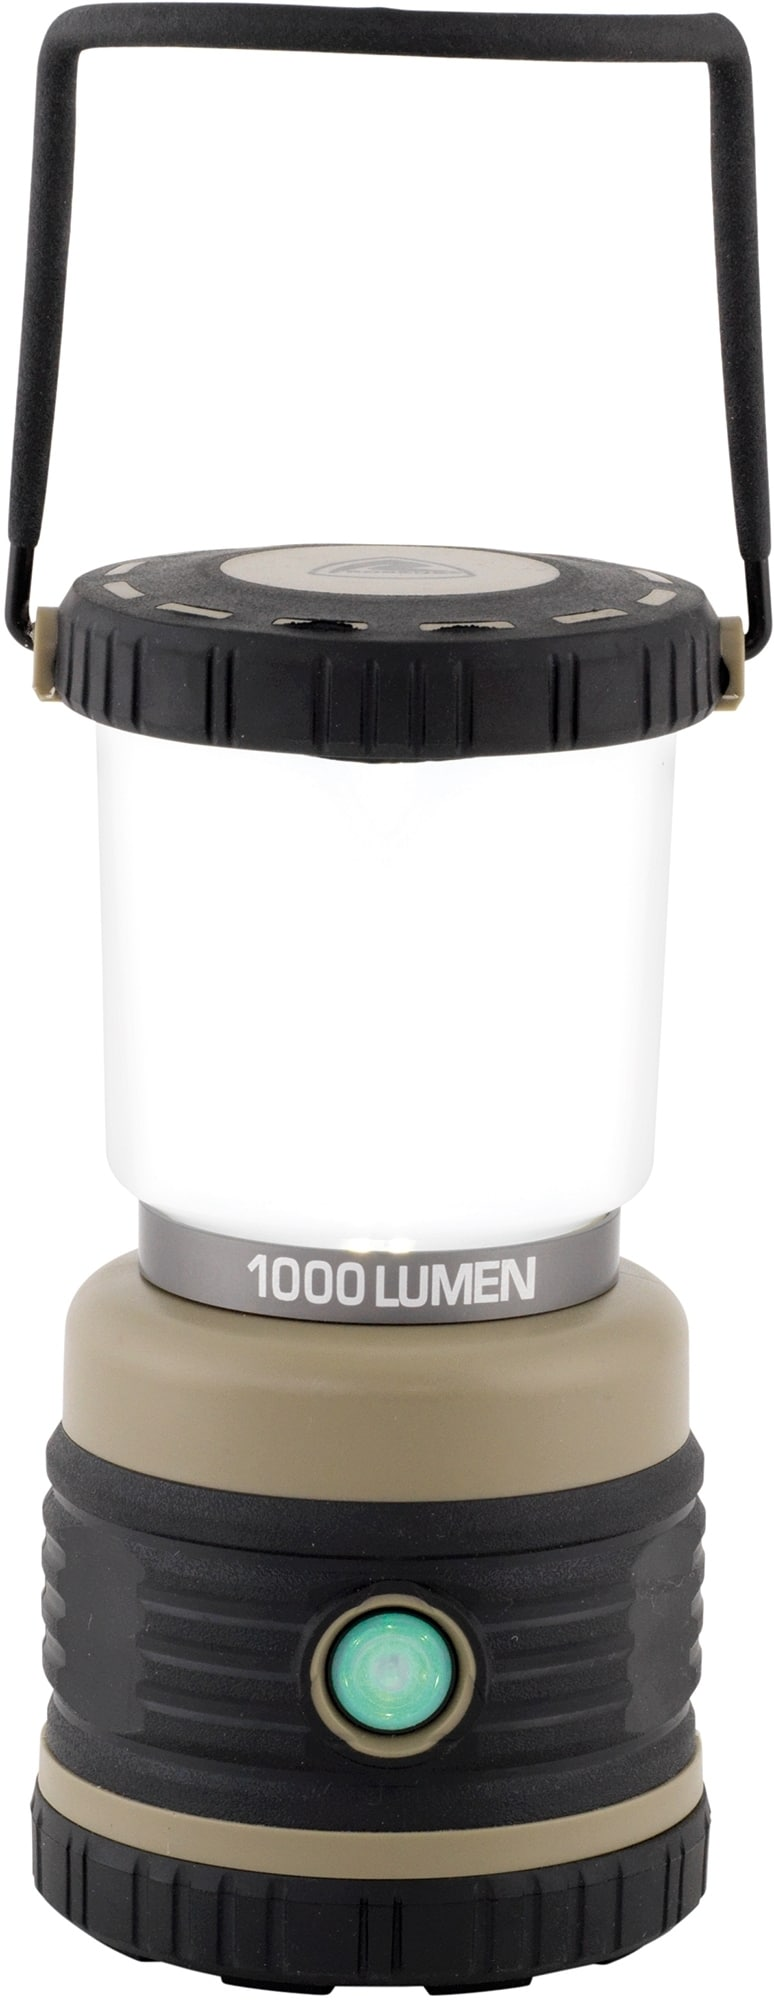 Robens Rechargeable Lantern up to 1000 Lumens